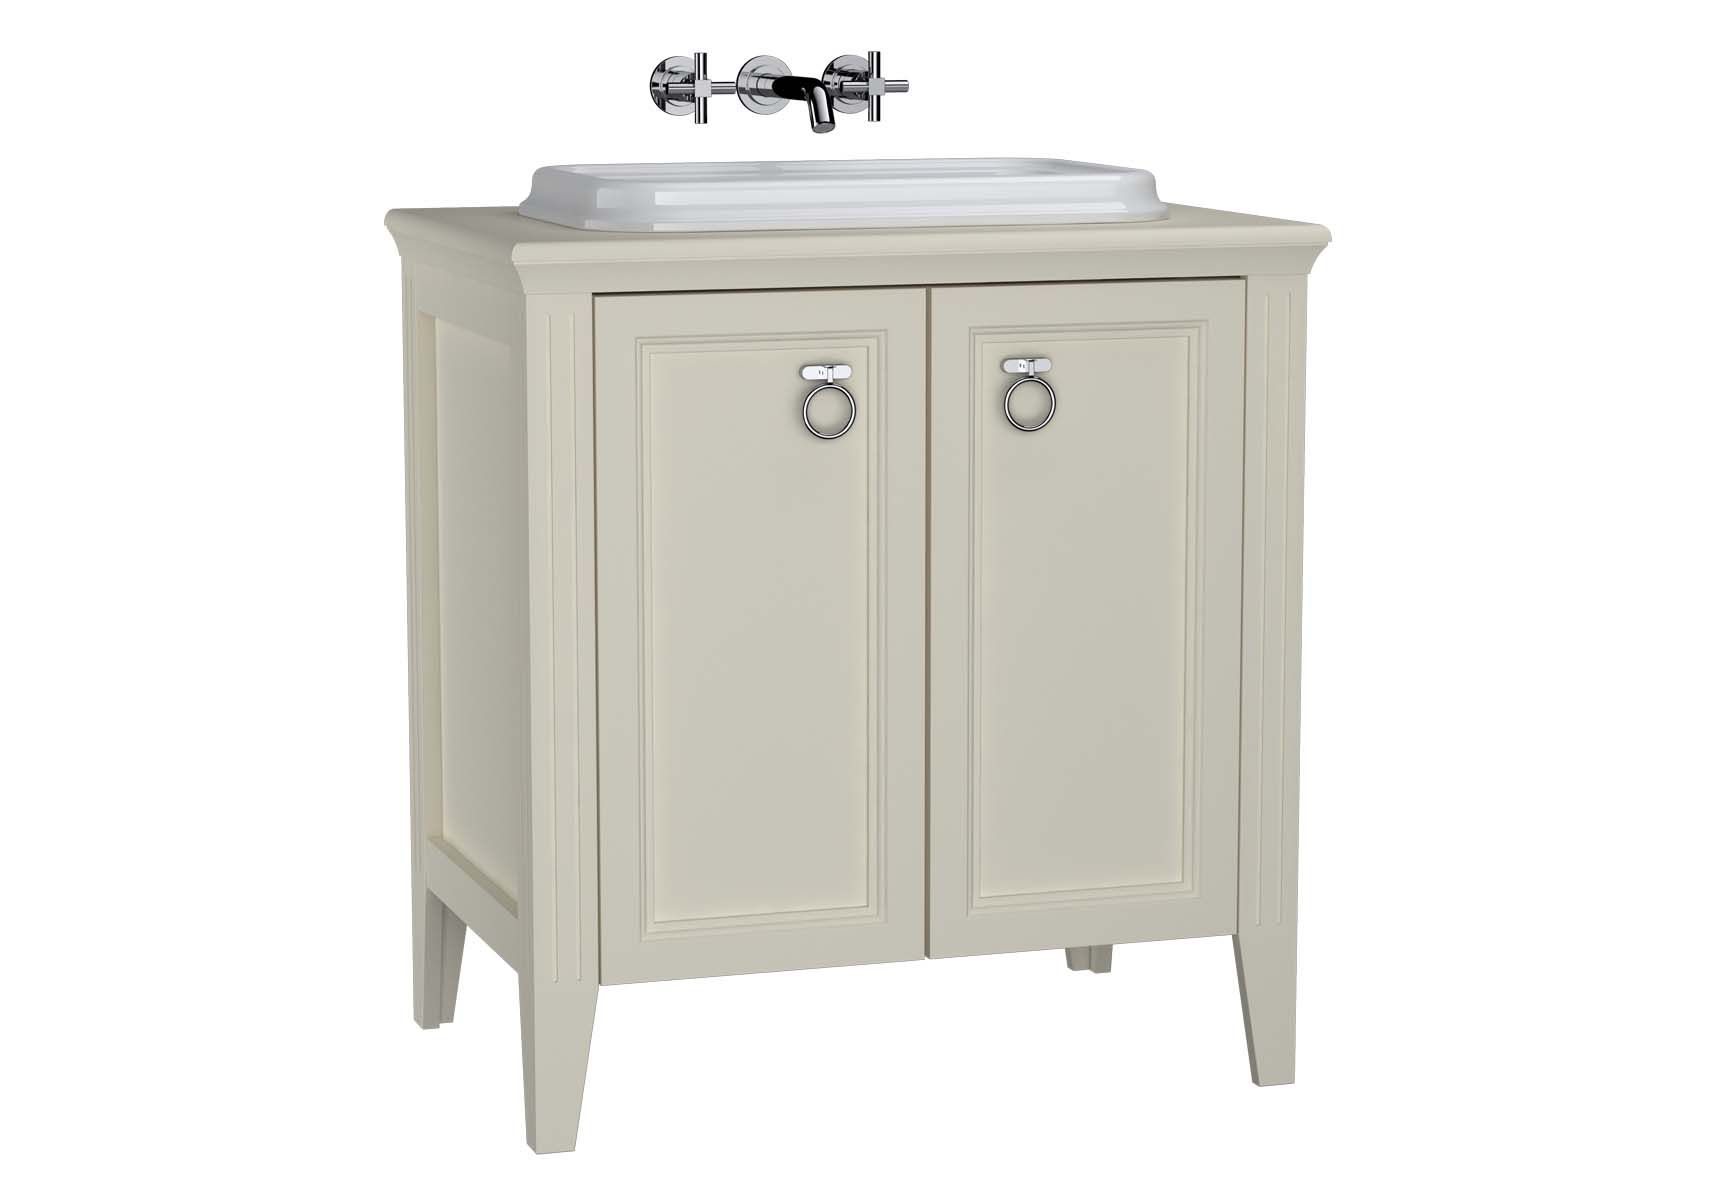 Valarte Washbasin Unit, 80 cm, with doors, with countertop washbasin, Matte Ivory